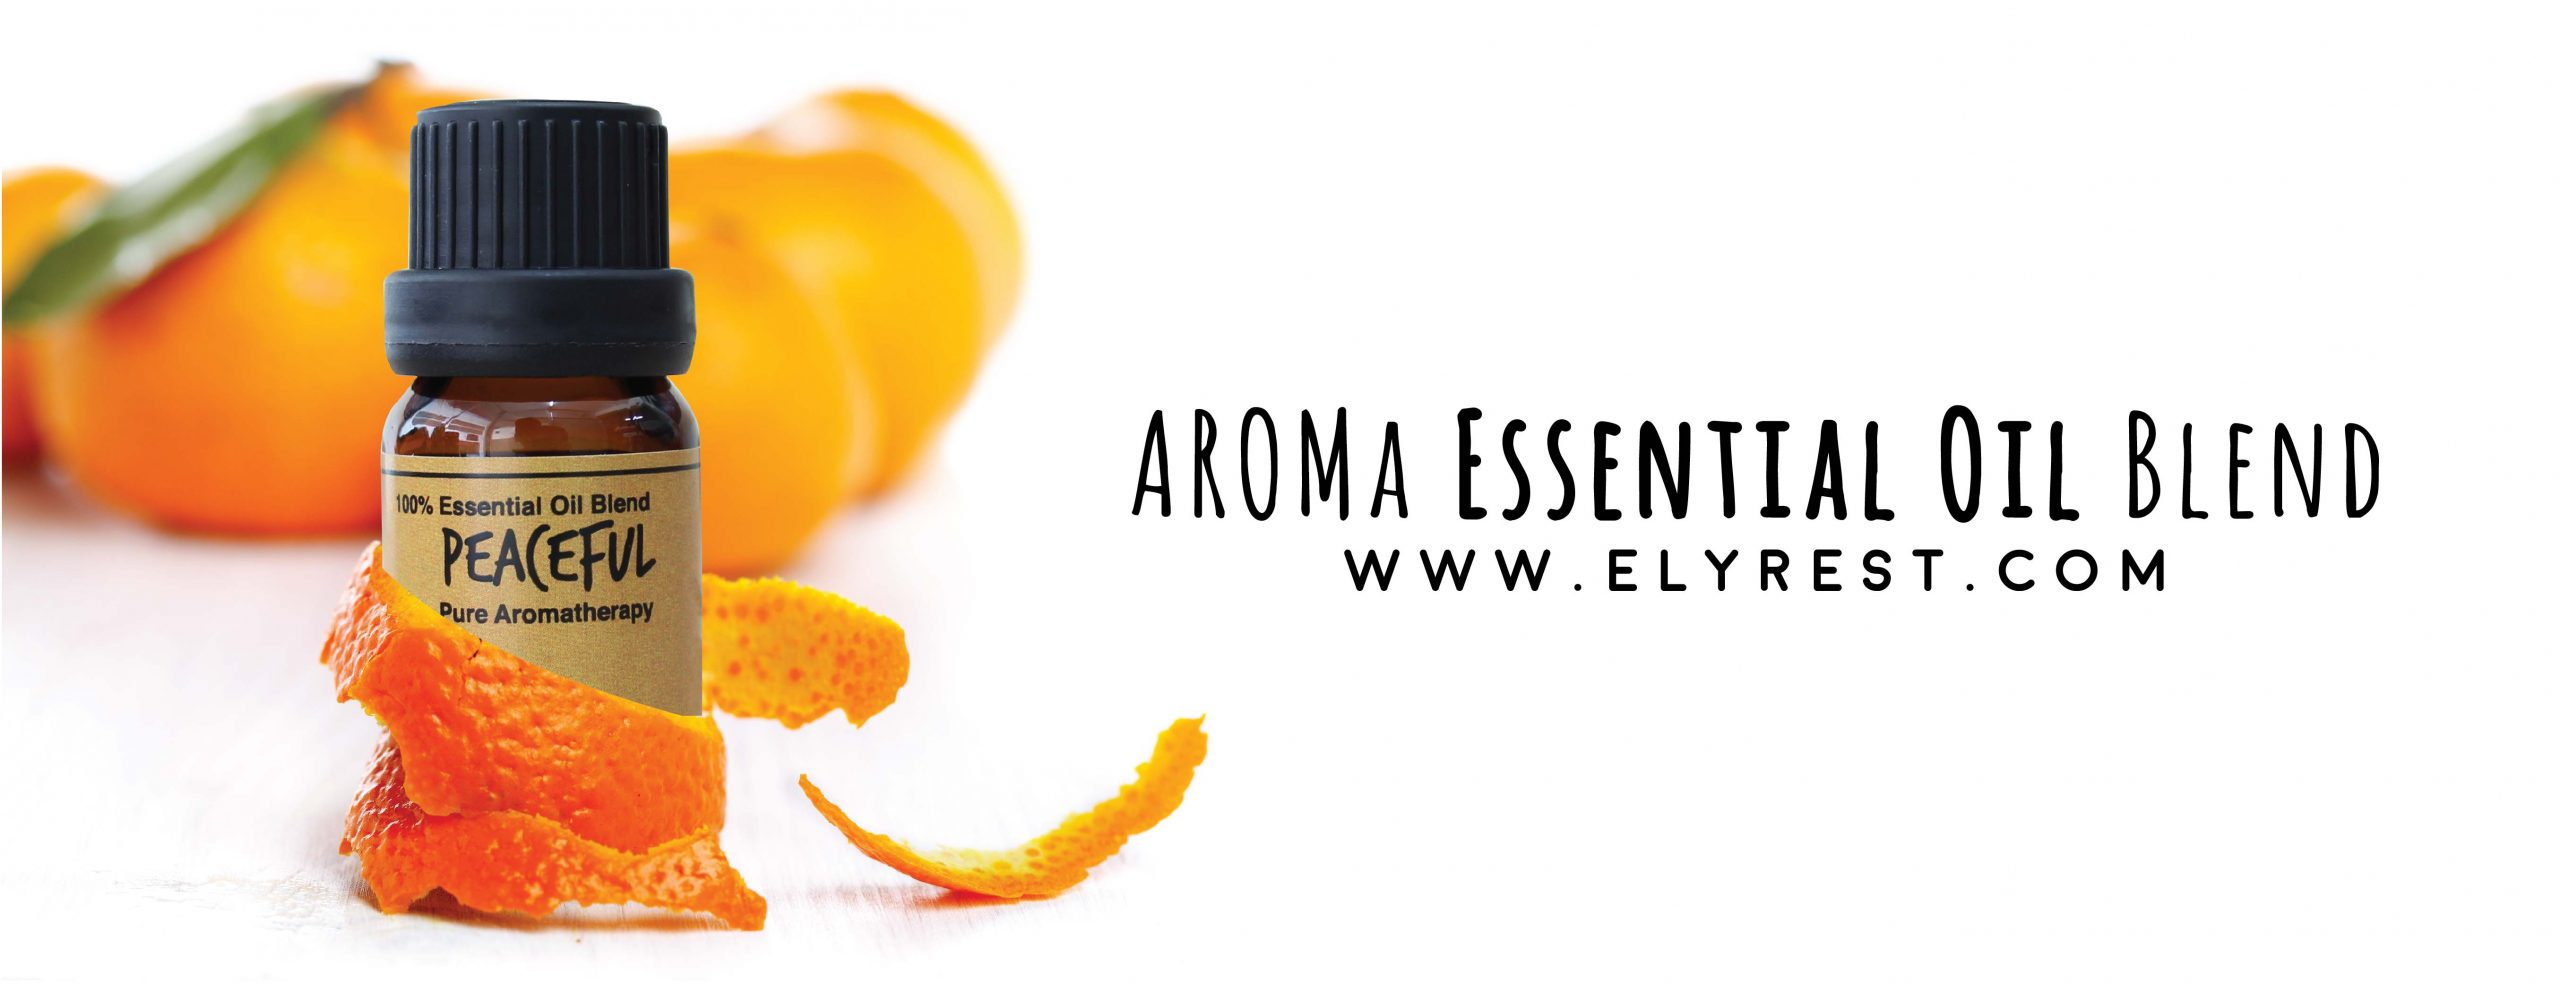 Aroma Essential Oil Blends